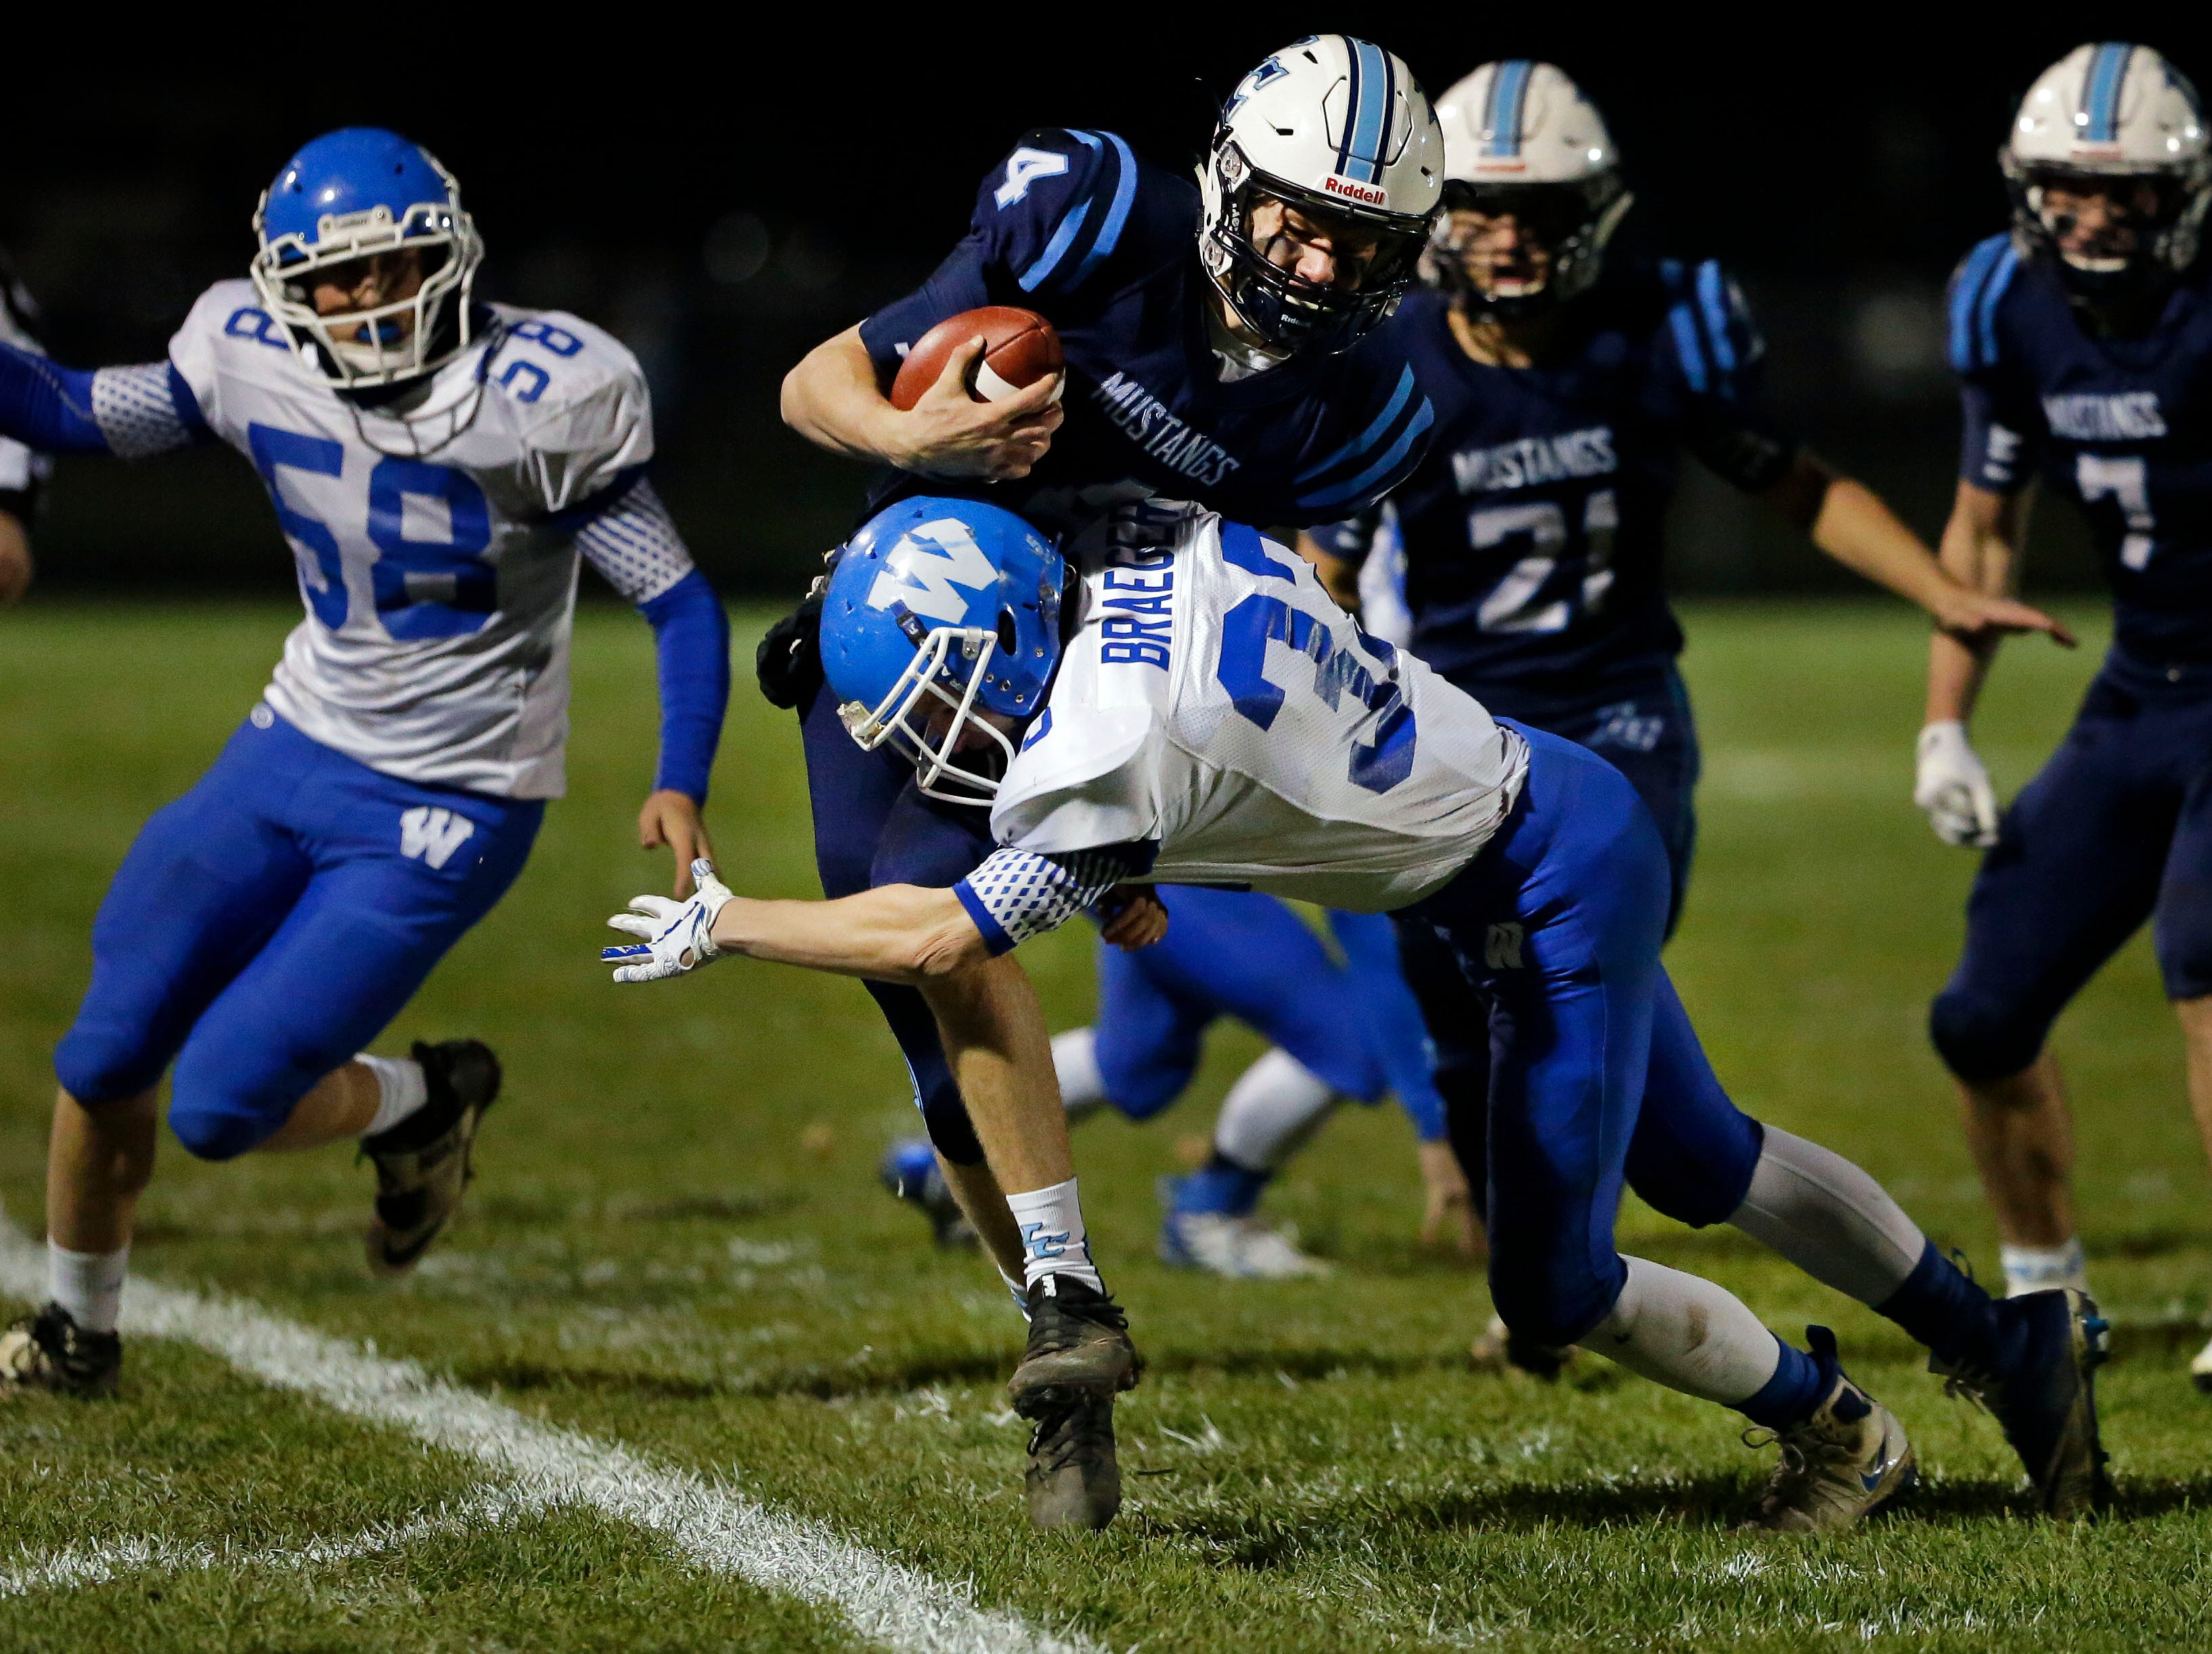 Noah Mueller of Little Chute is tackled by Will Braeger of Wrightstown in a WIAA Division 4 Level 3 playoff game Friday, November 2, 2018, at Fitzpatrick Field in Little Chute, Wis.Ron Page/USA TODAY NETWORK-Wisconsin